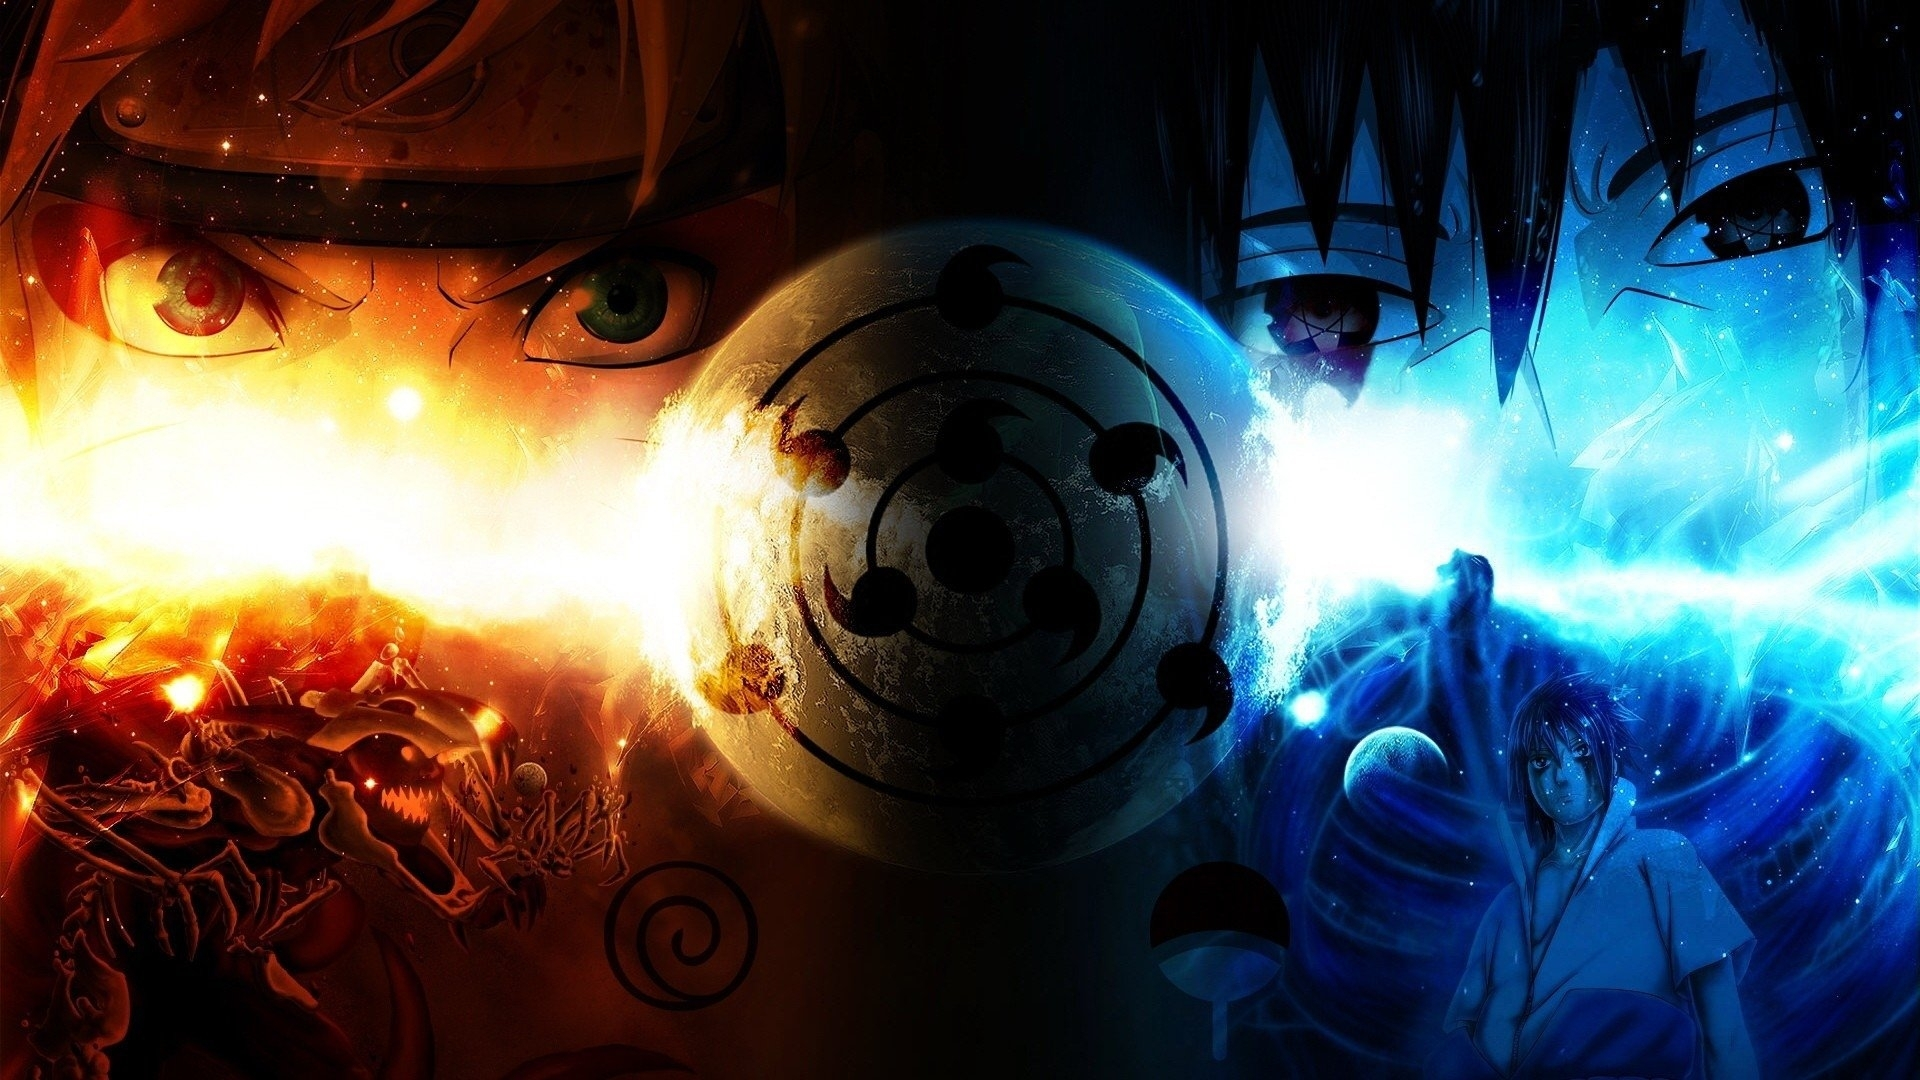 53 sharingan (naruto) hd wallpapers | background images - wallpaper